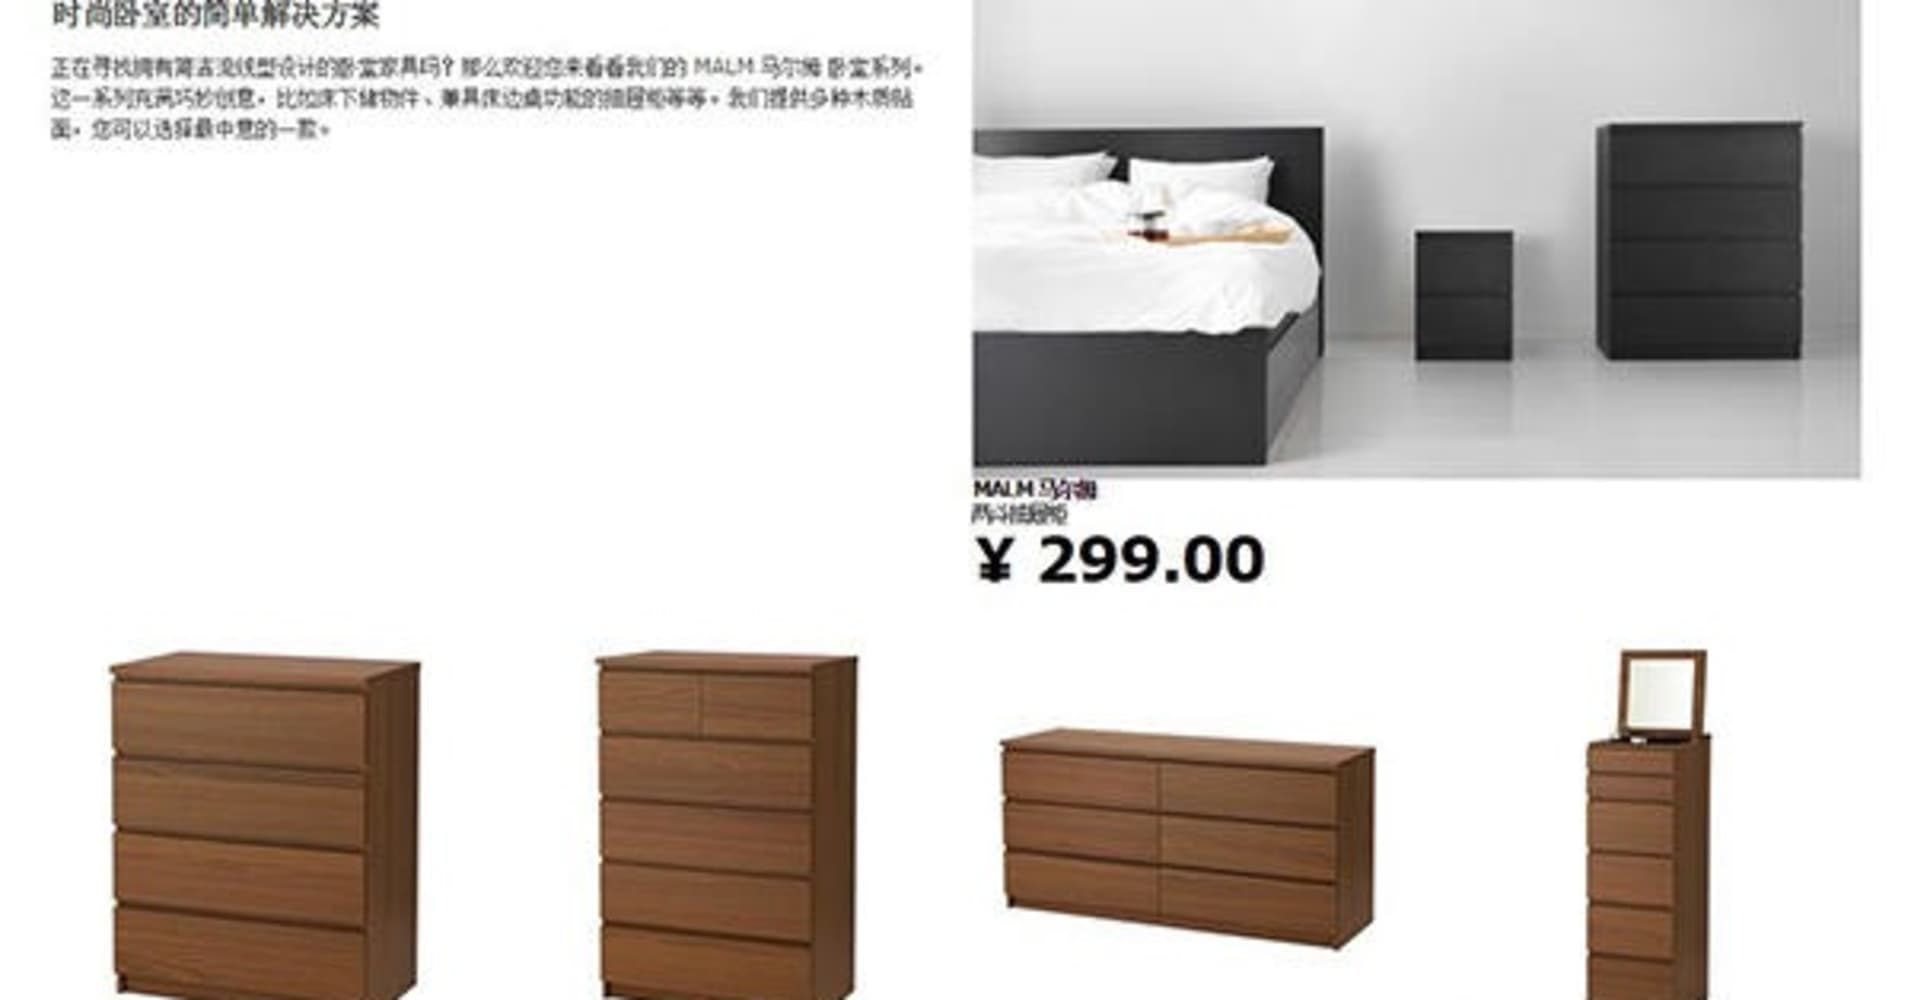 Ikea to recall malm dressers chests in china watchdog - Mobile malm ikea ...